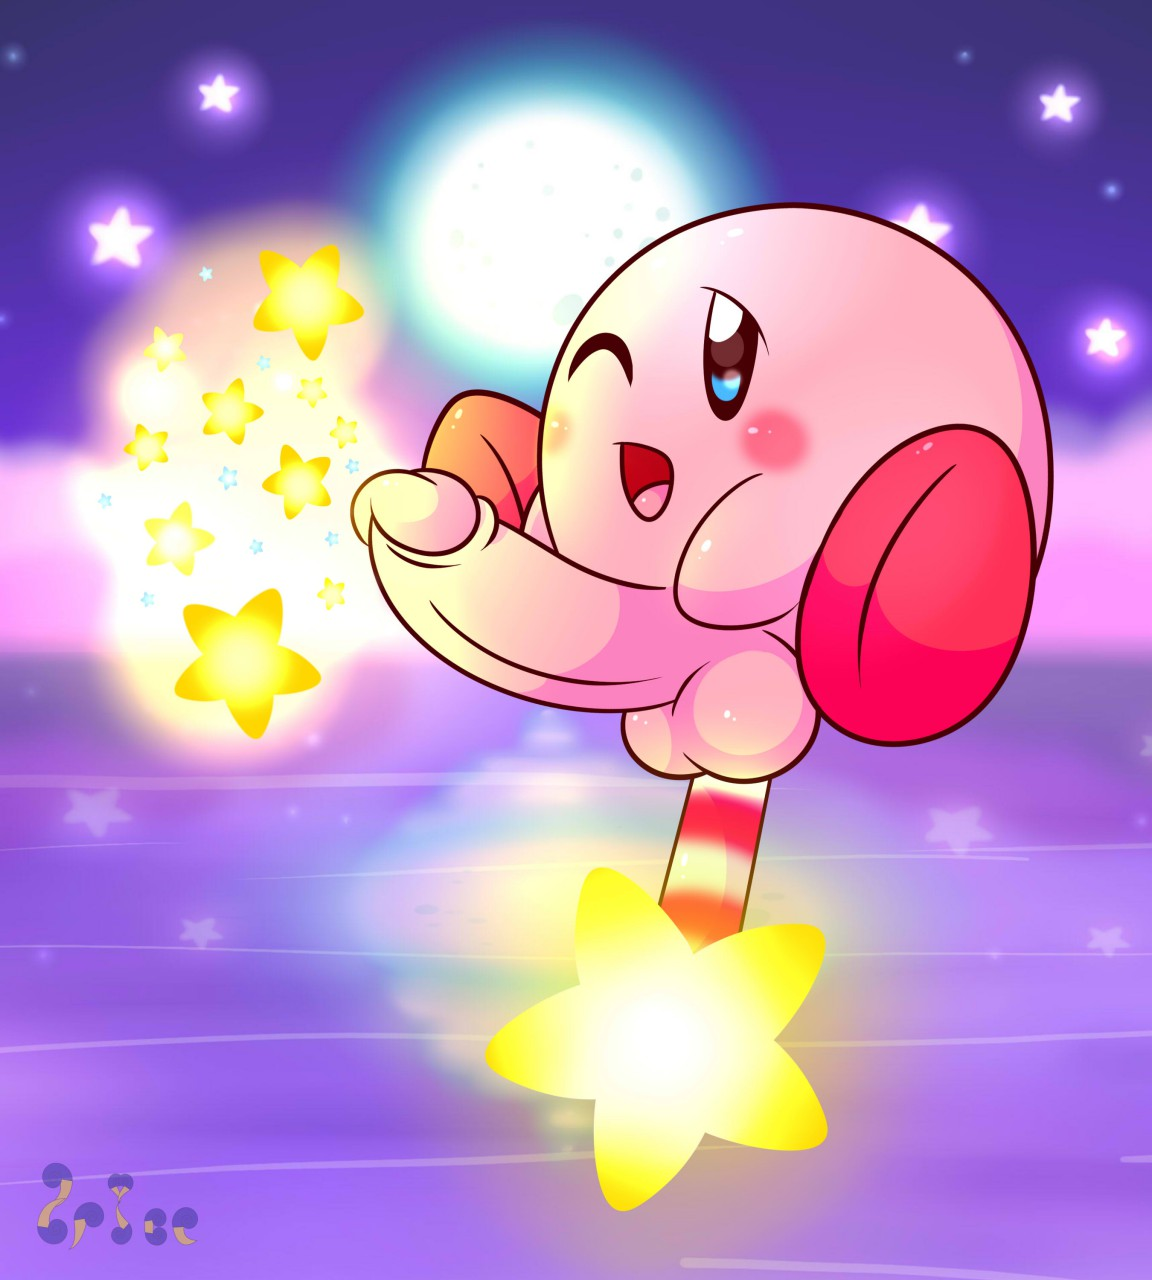 star kirby allies Cloudy with a chance of meatballs sex